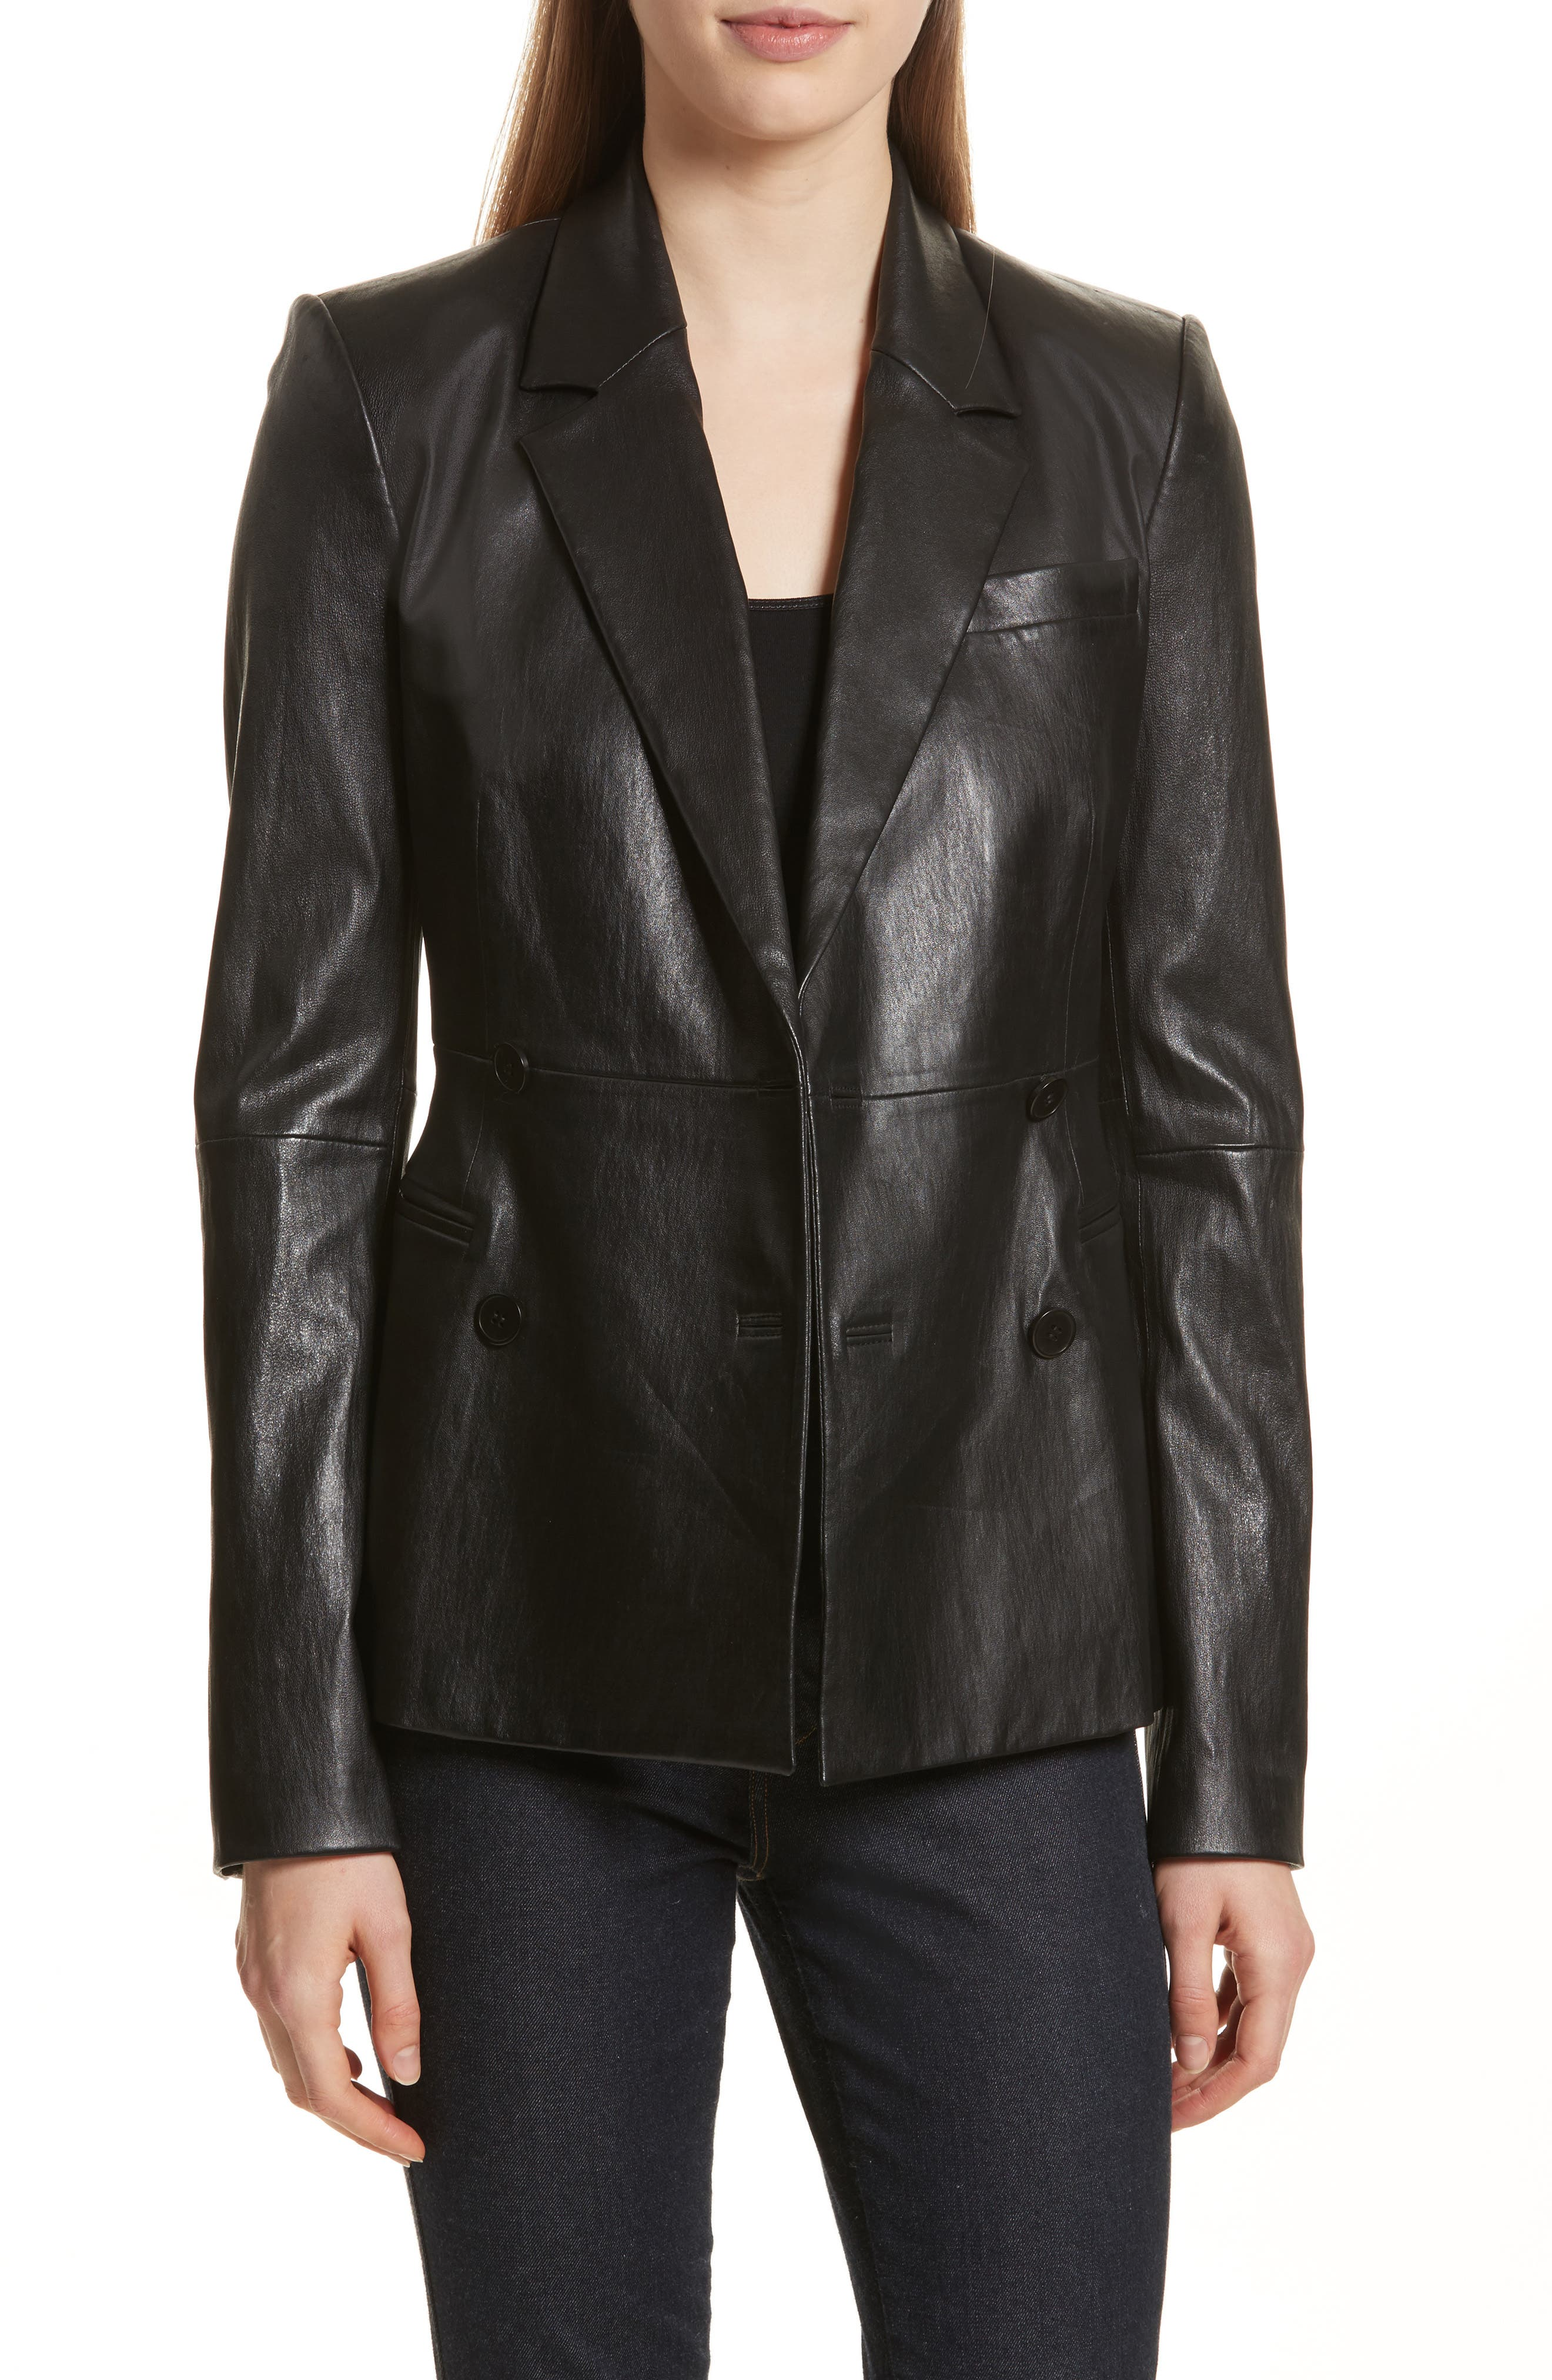 Bristol Leather Blazer,                             Main thumbnail 1, color,                             Black